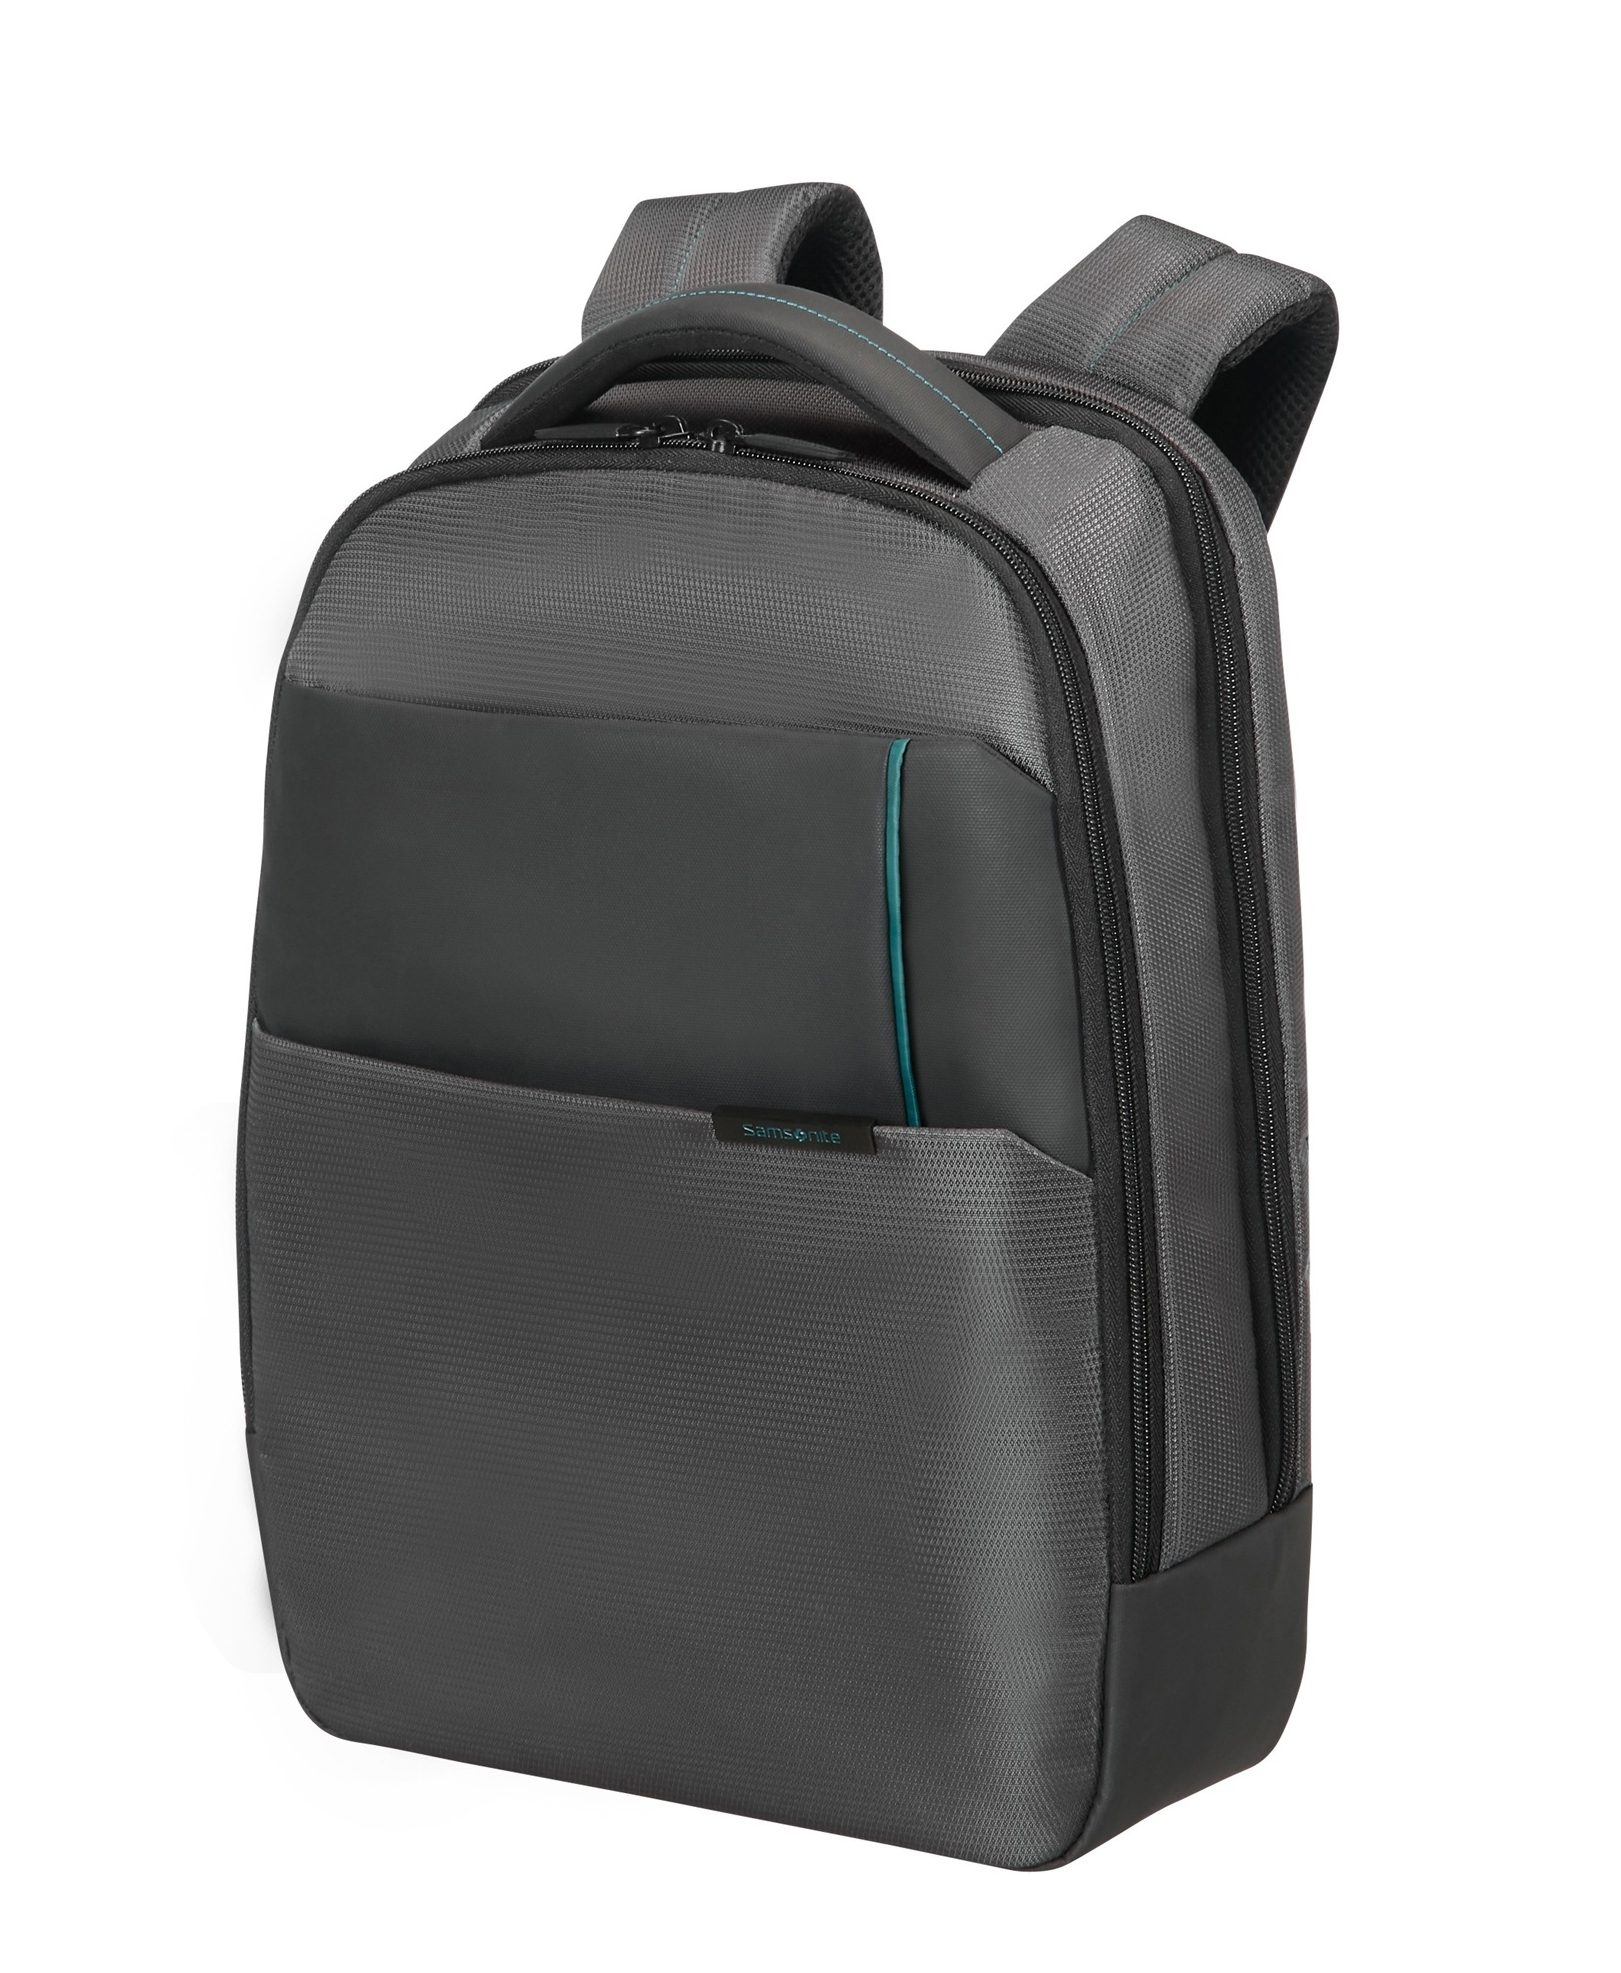 SAMSONITE - BORSE NOTEBOOK - 5414847698255